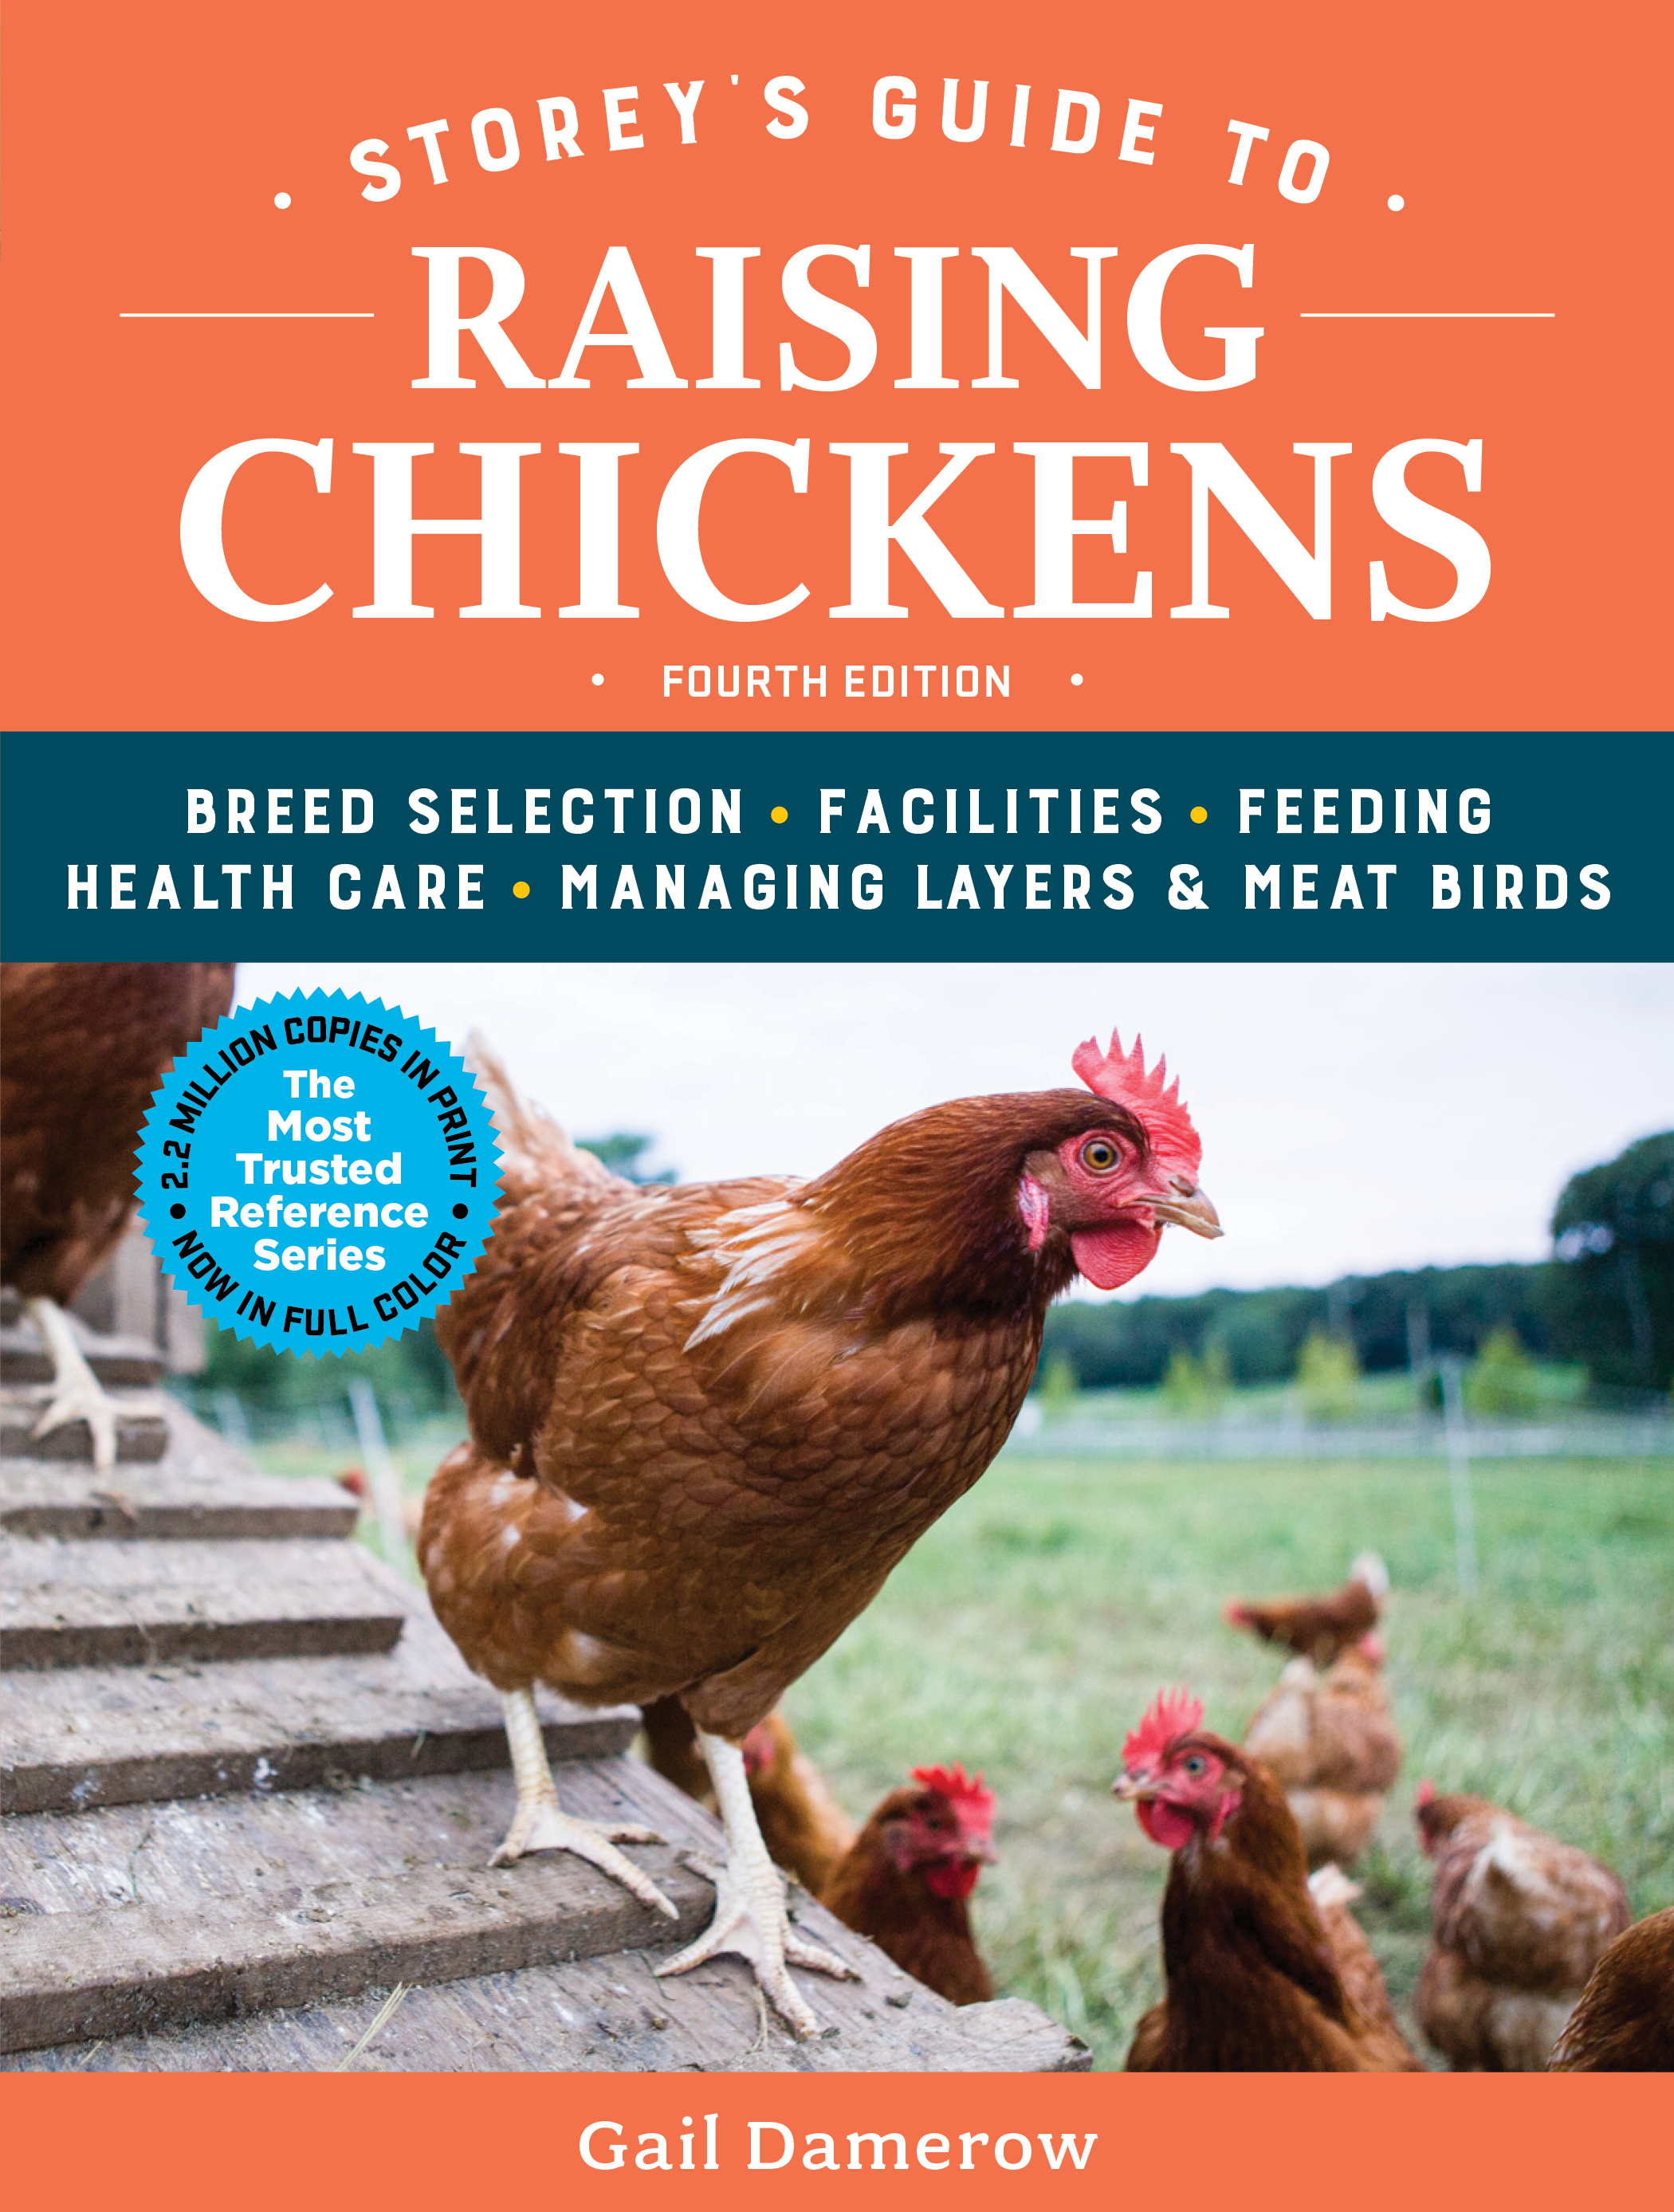 Storey's Guide to Raising Chickens, 4th Edition Breed Selection, Facilities, Feeding, Health Care, Managing Layers & Meat Birds - Gail Damerow